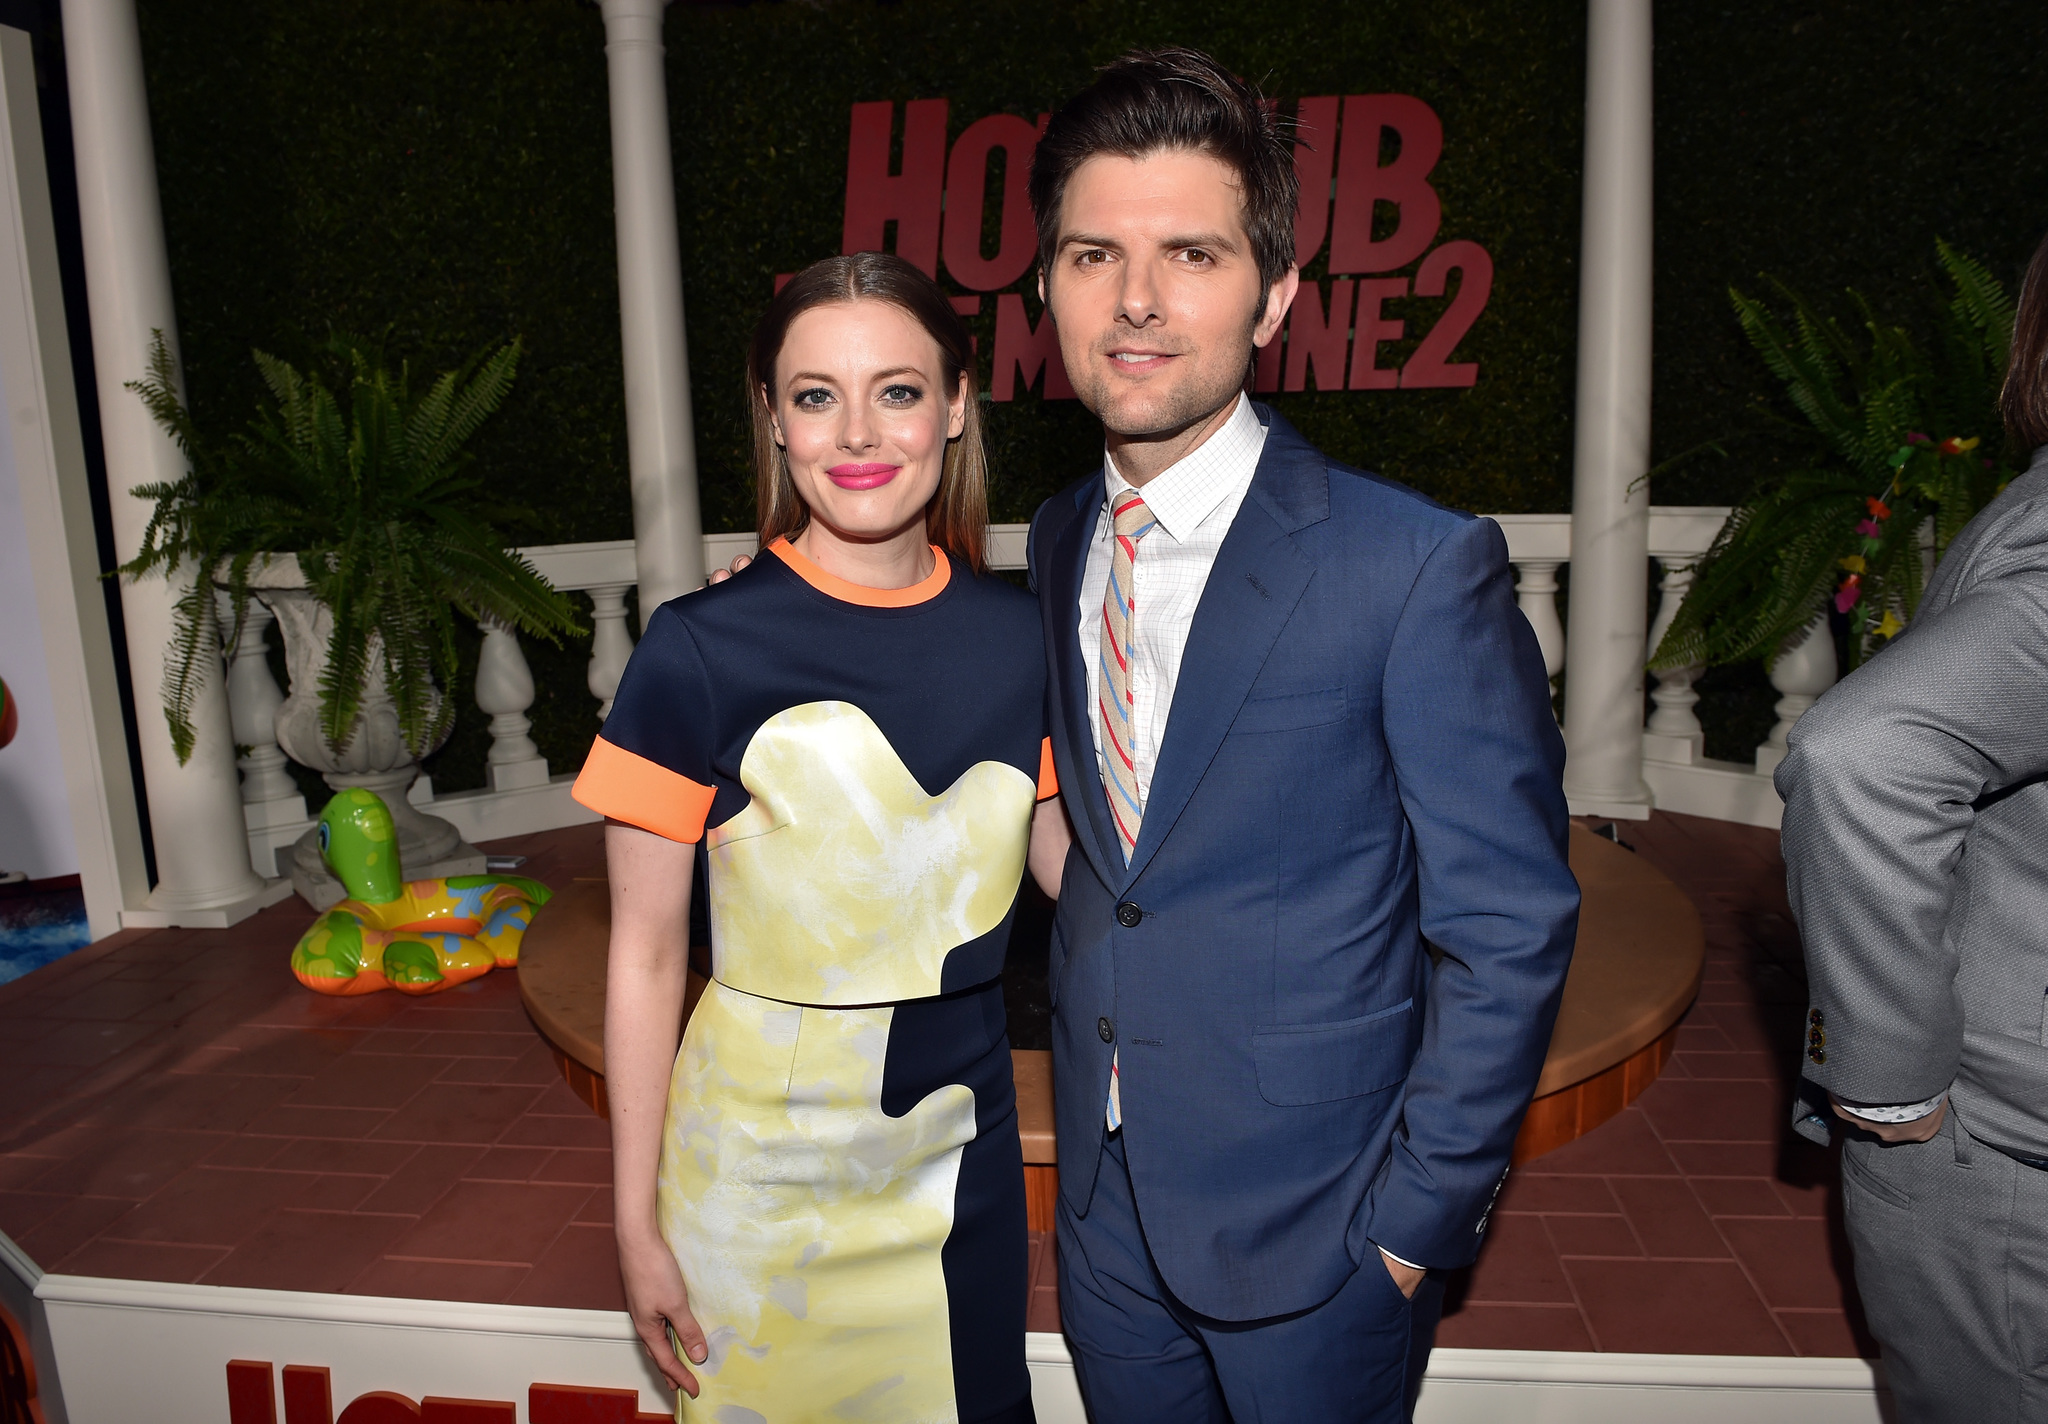 Adam Scott and Gillian Jacobs at an event for Hot Tub Time Machine 2 (2015)